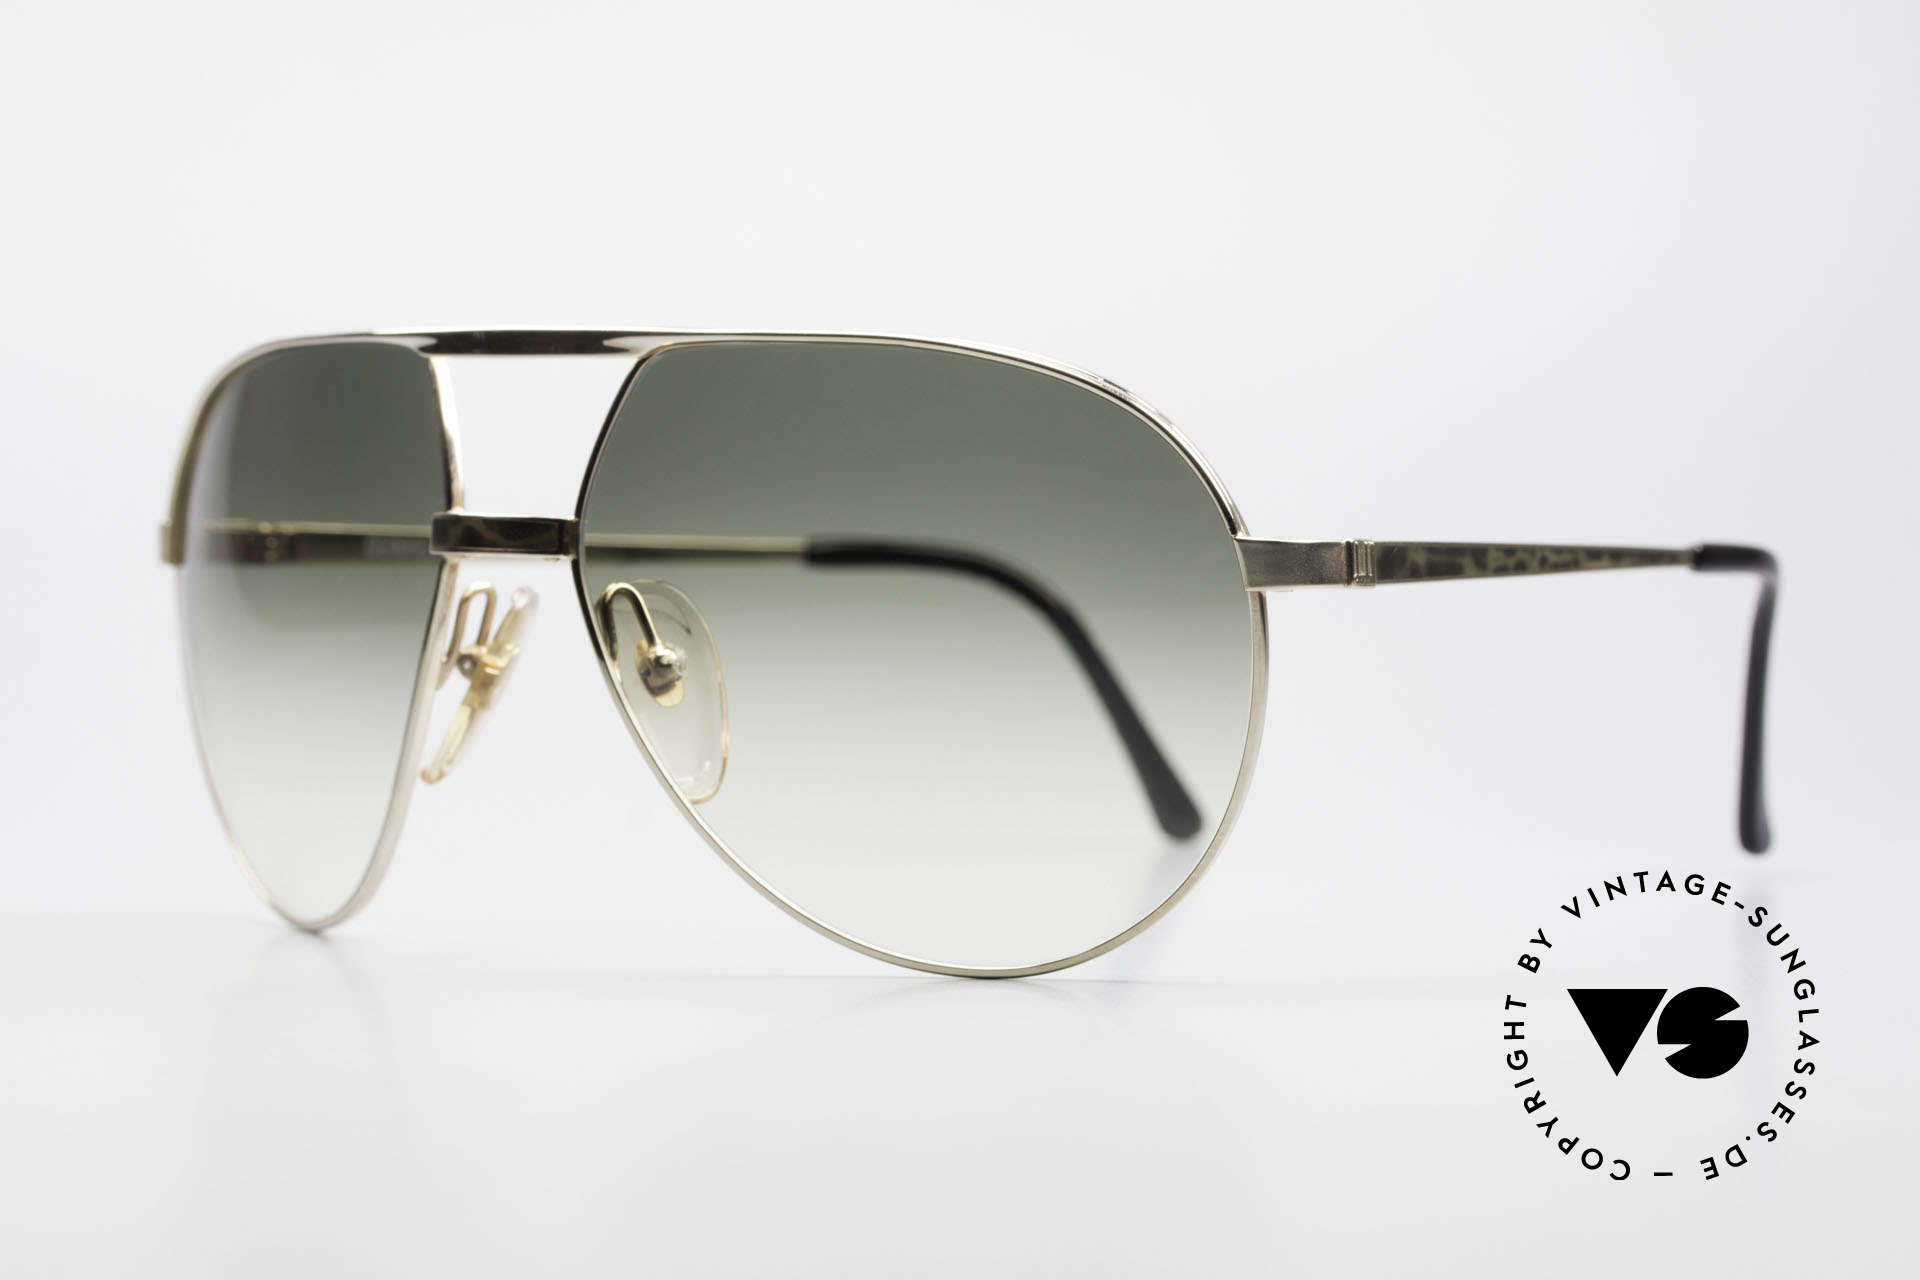 Dunhill 6042 80's Luxury Aviator Sunglasses, unbelievable quality & workmanship (monolithic), Made for Men